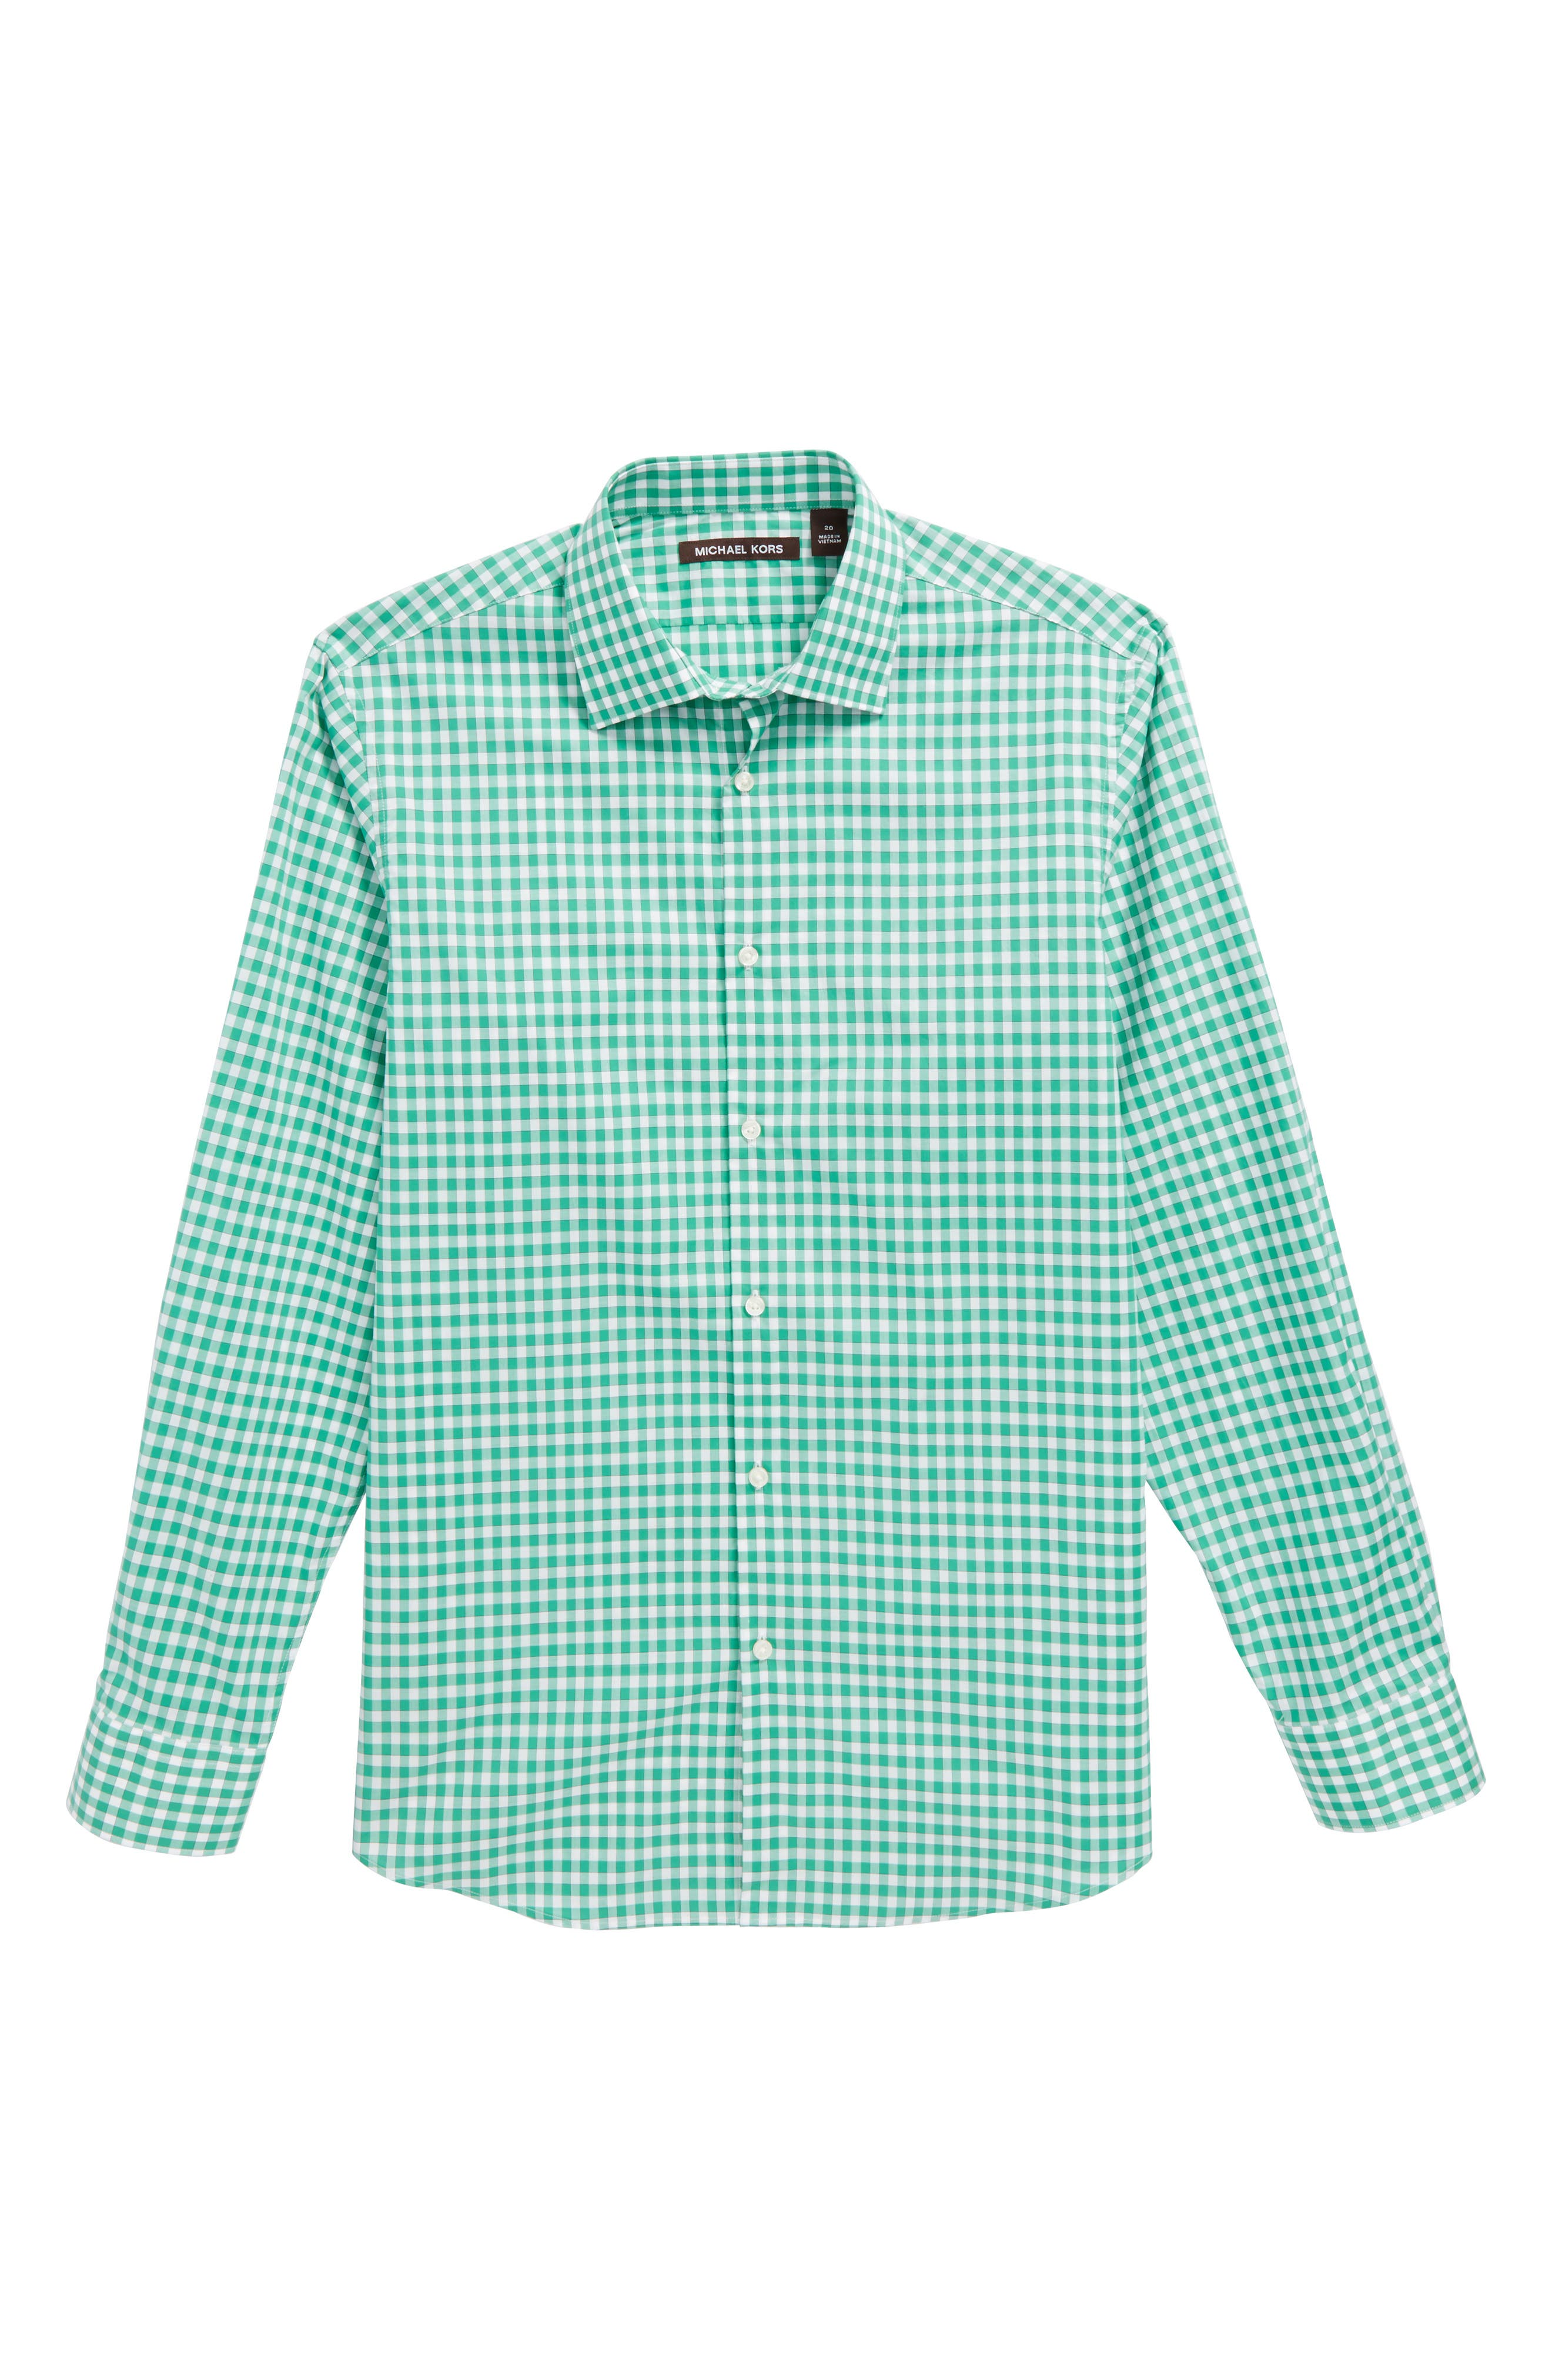 Michael Kors Check Dress Shirt (Big Boys)